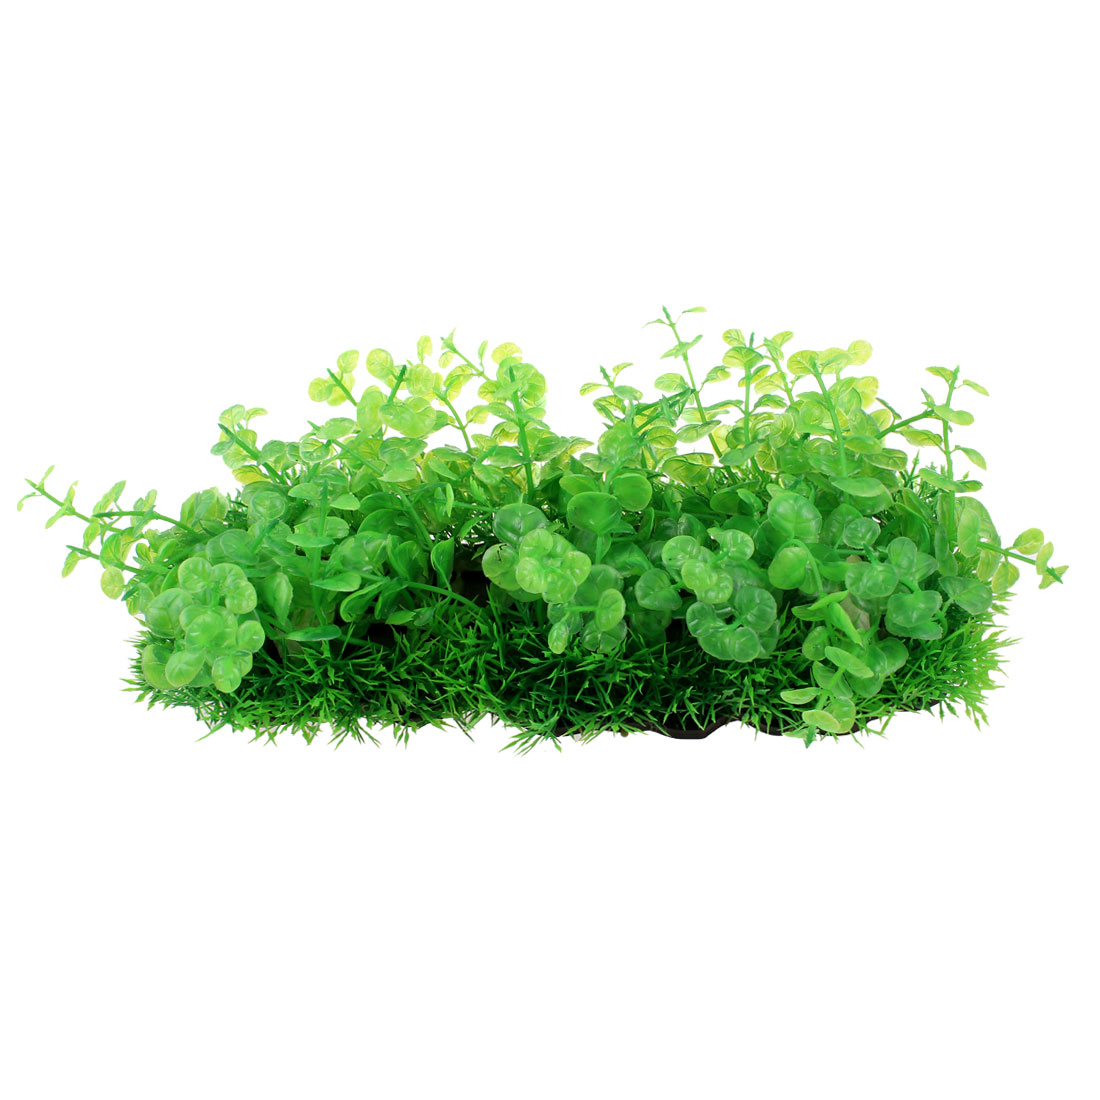 Fish Tank Emulational Green Plastic Underwater Plant Decoration